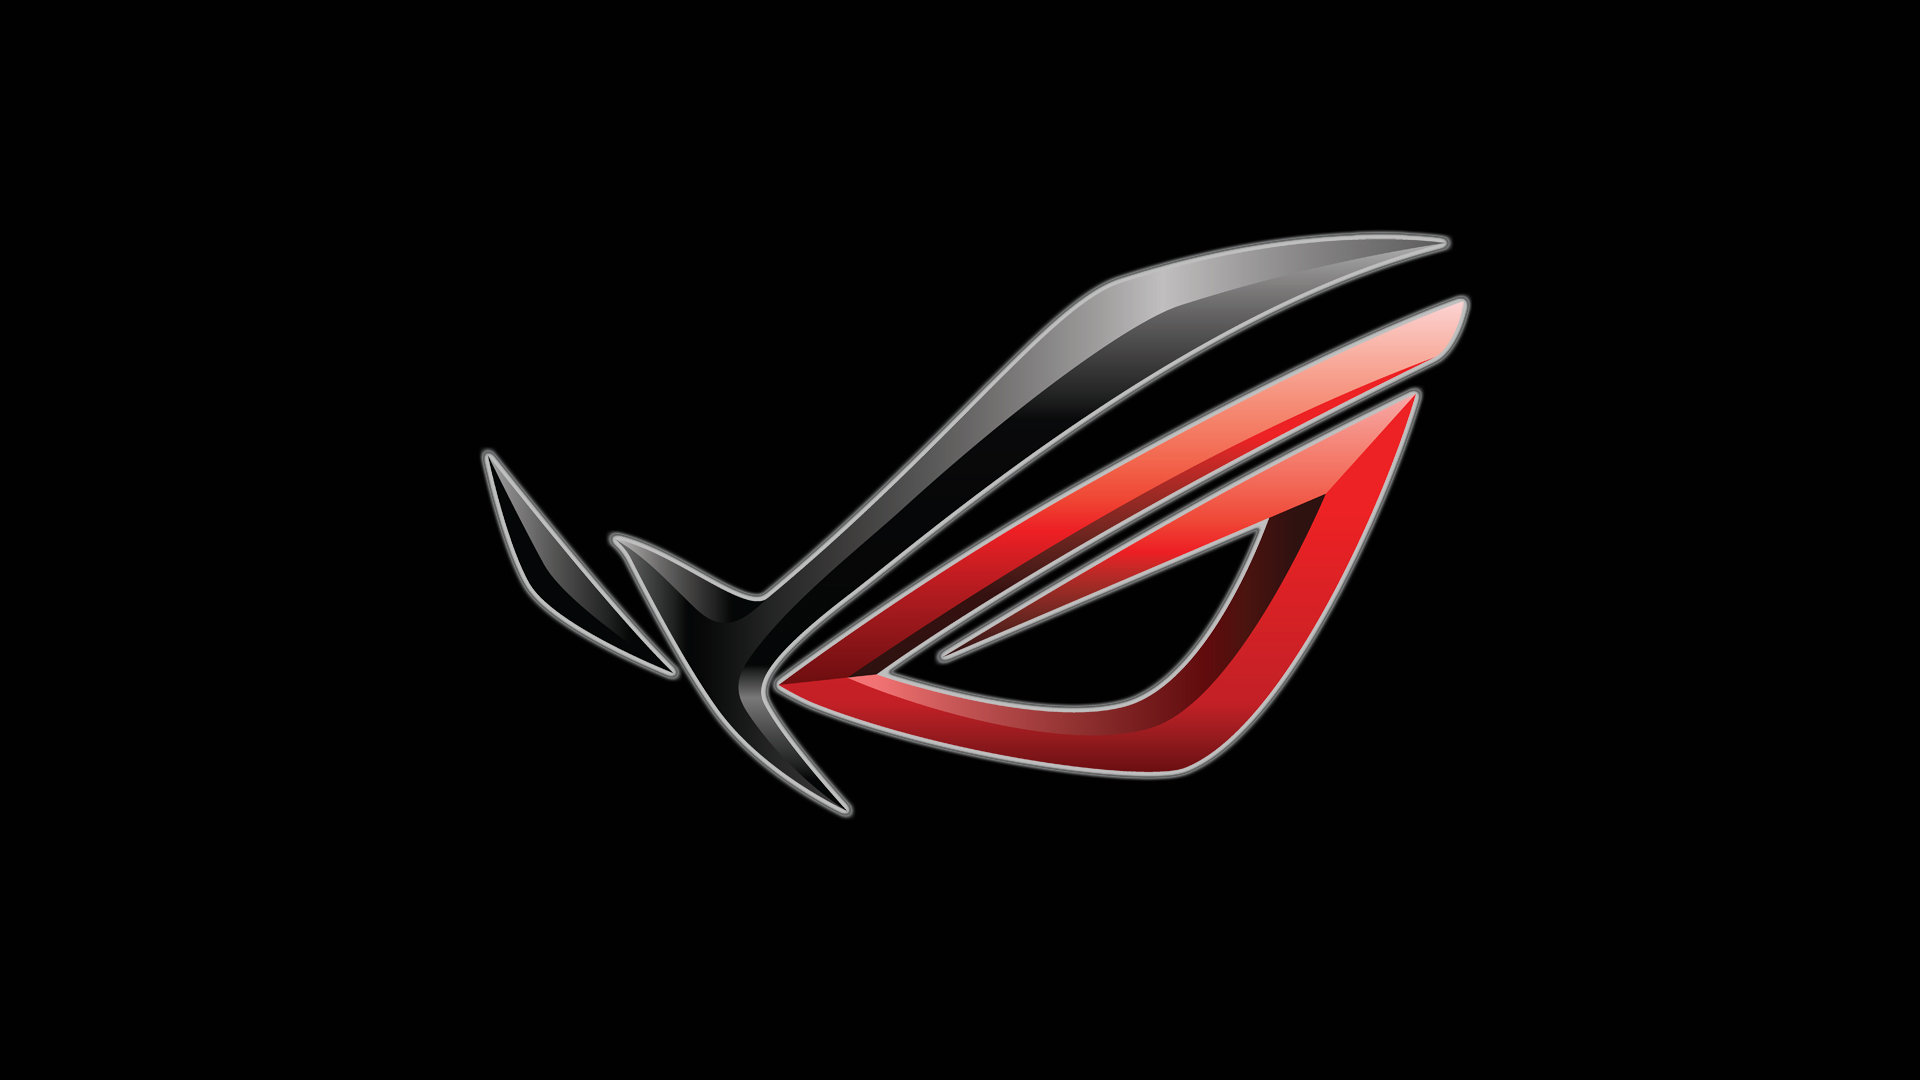 Rog wallpaper wallpapersafari - Asus x series wallpaper hd ...